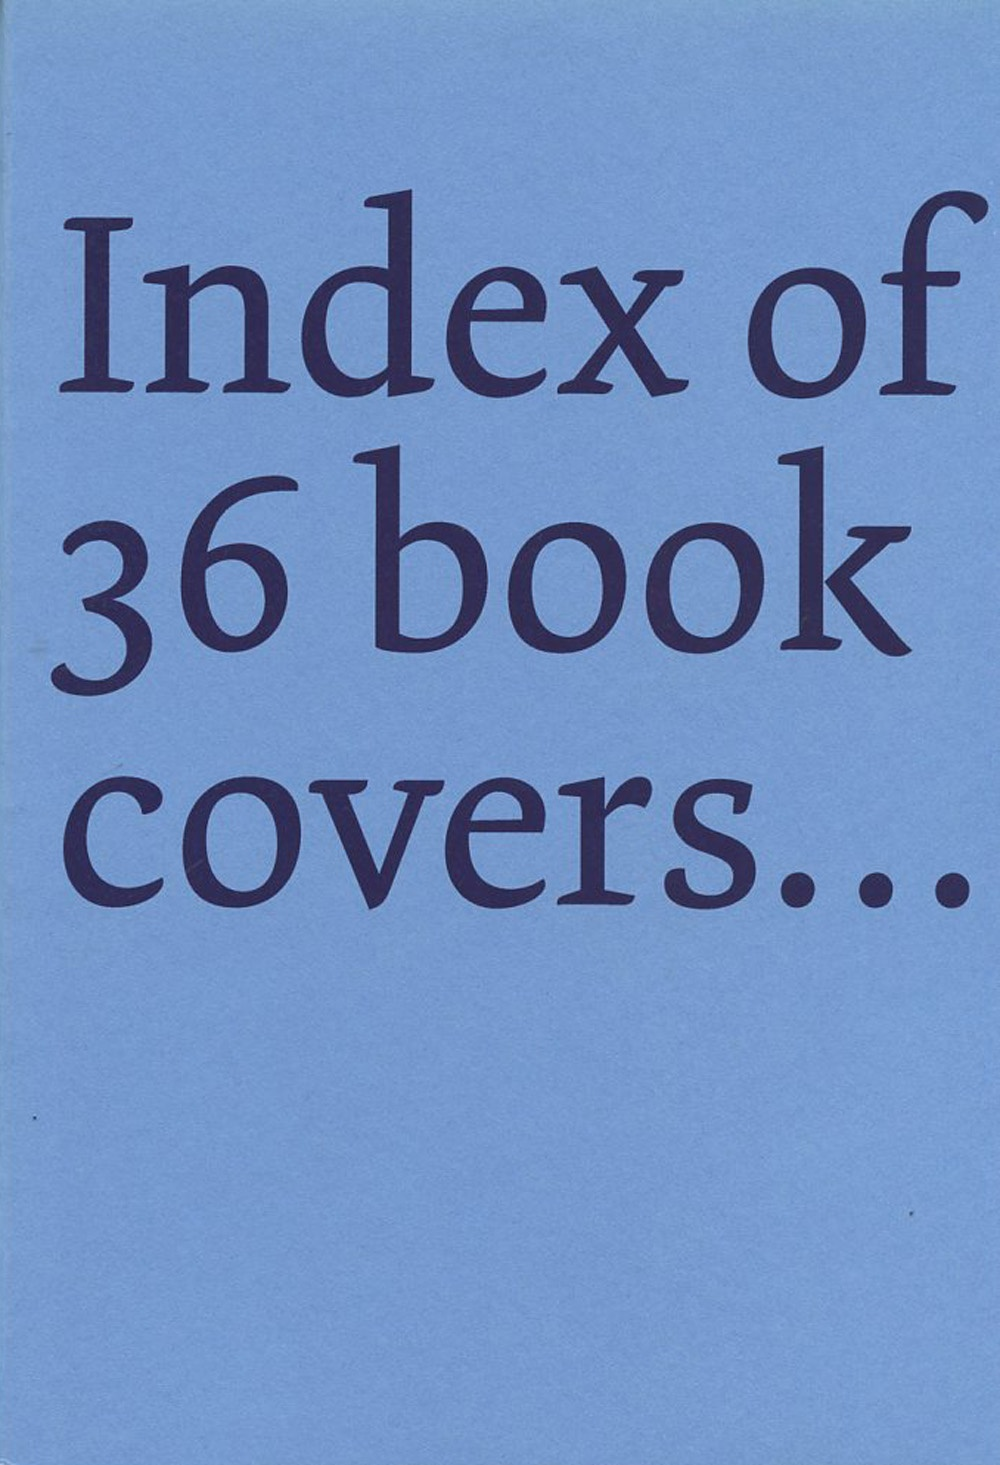 Derek Sullivan: Index of 36 book covers